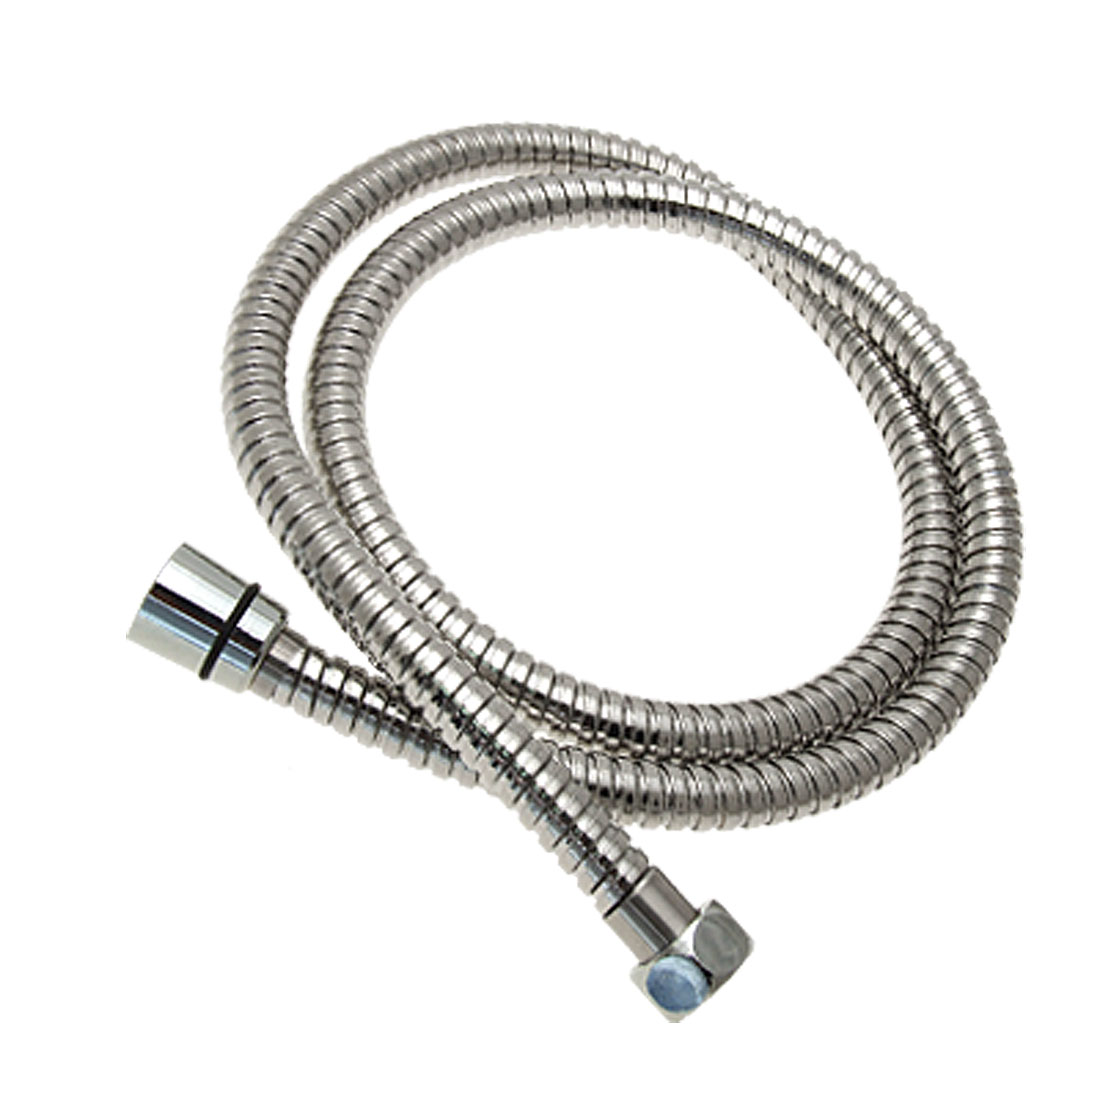 Silvery Metal Plated Plastic Shower Hose 1.2 Meter Long